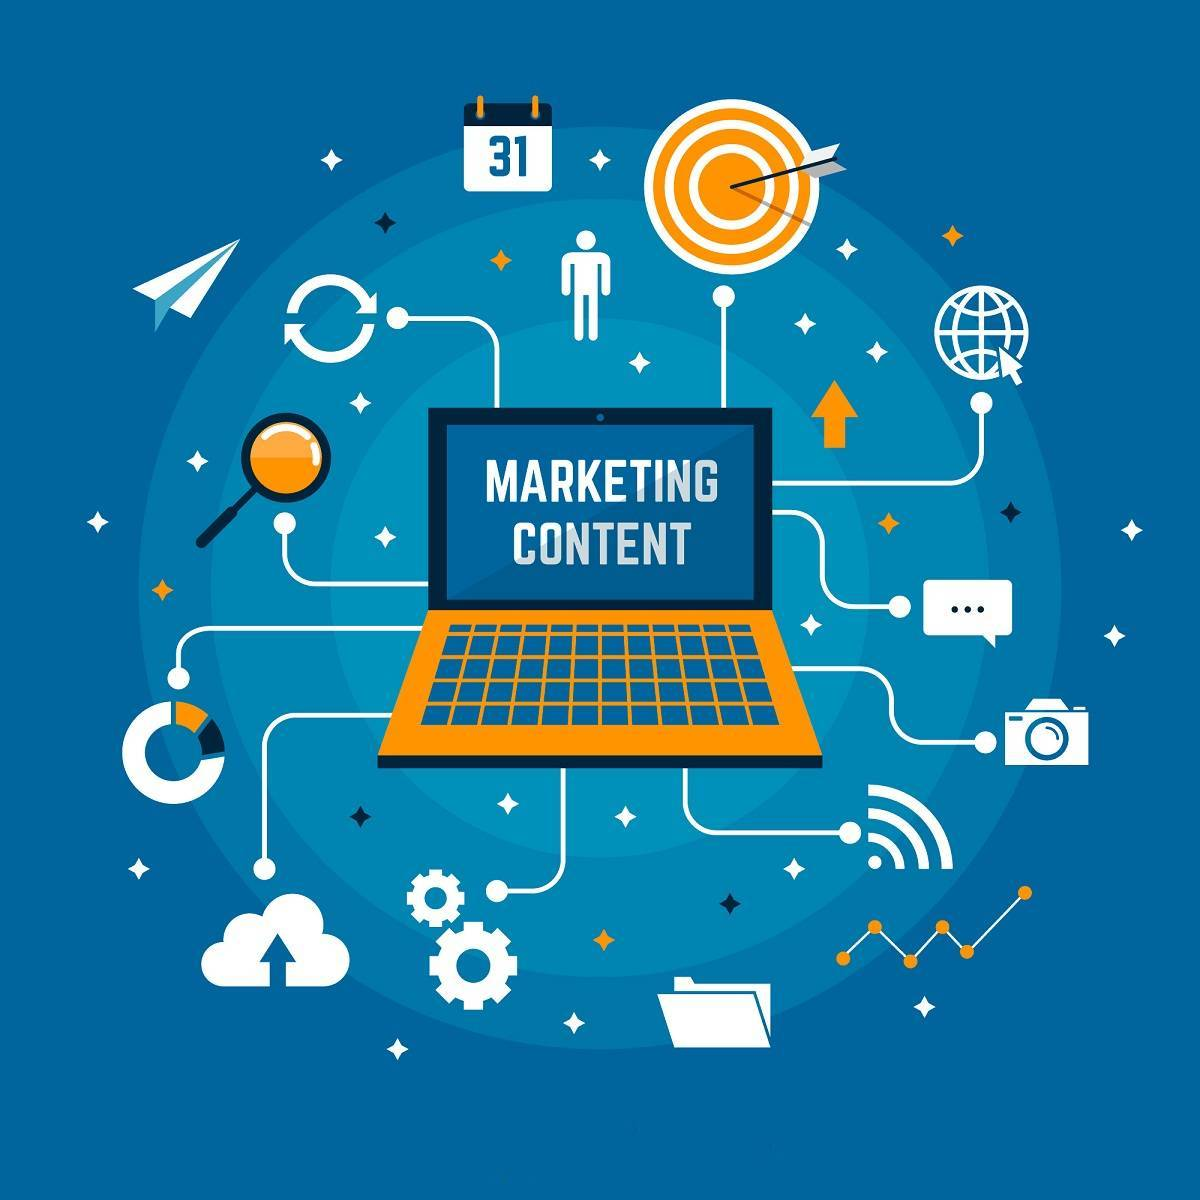 Brands need to leverage the power of digital marketing